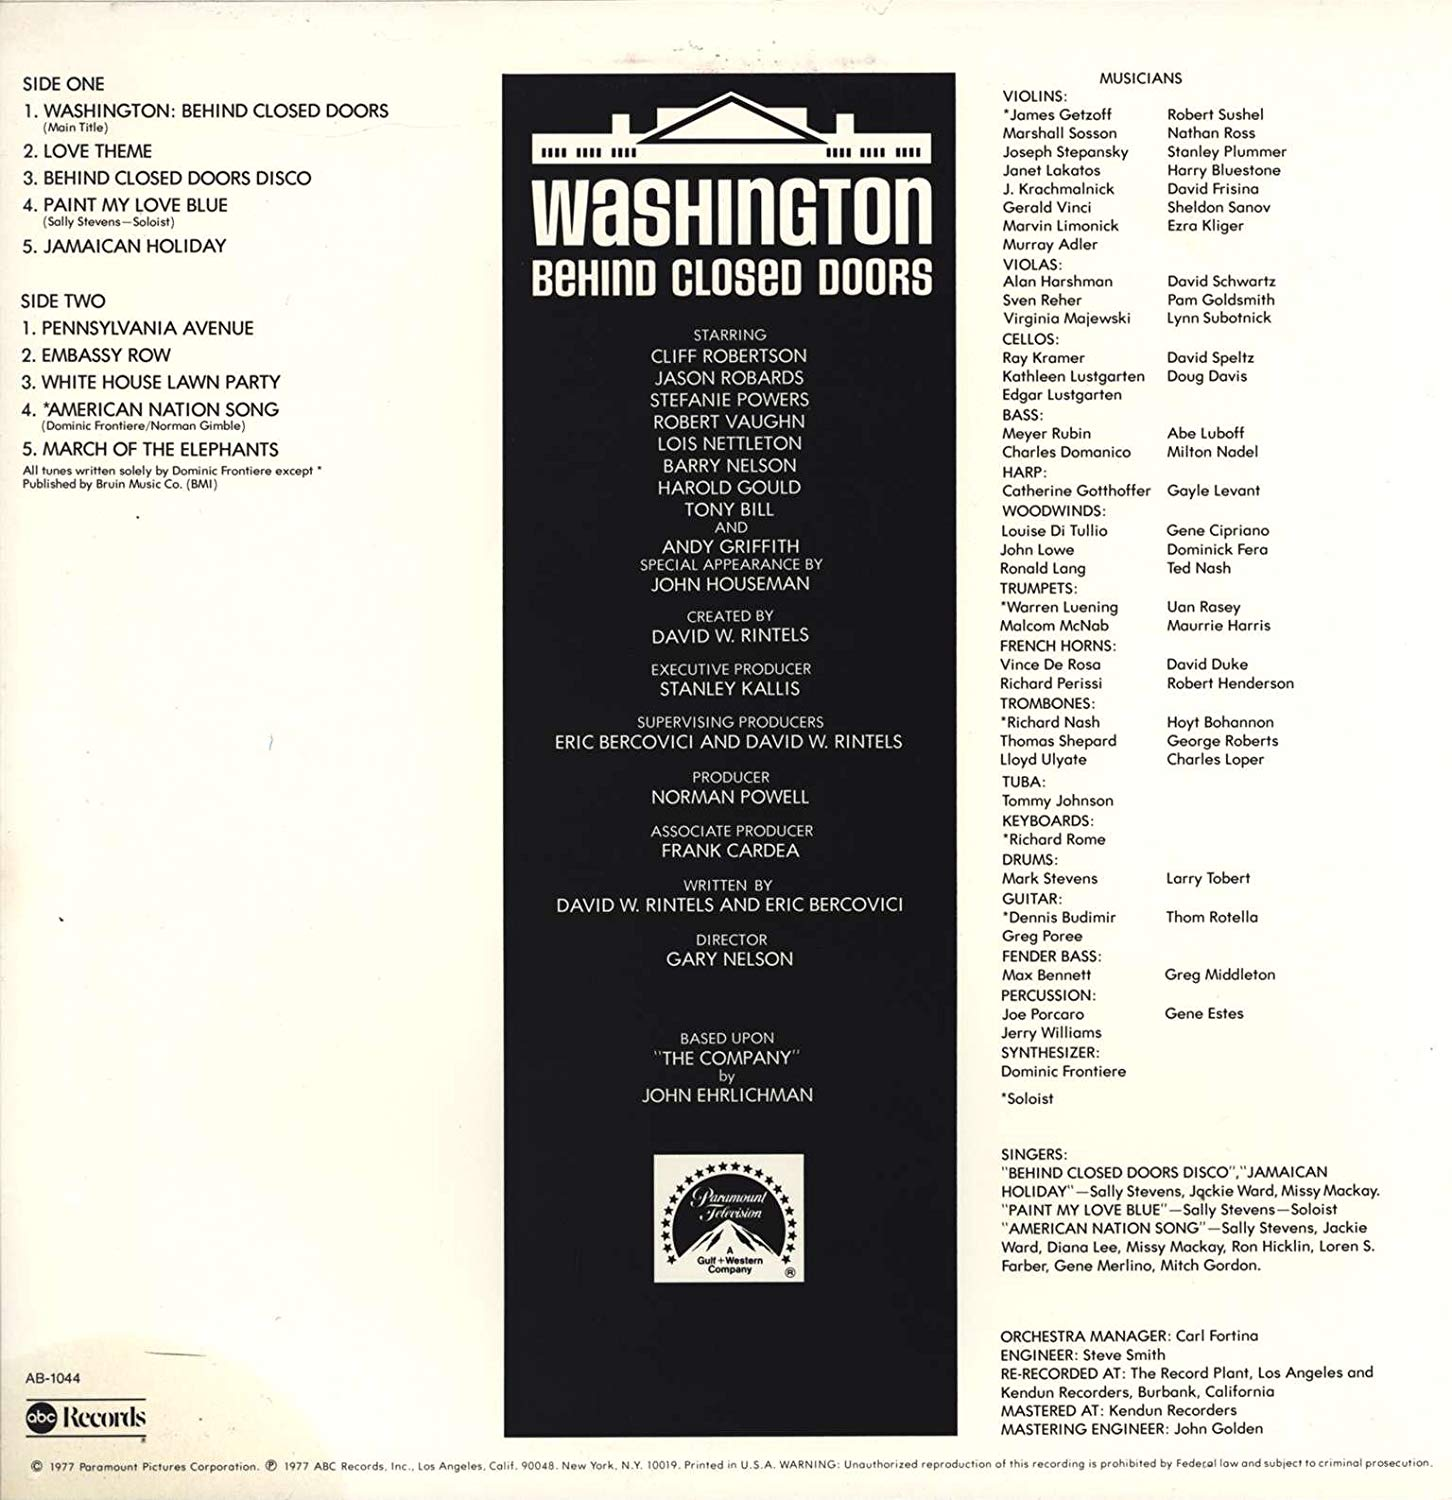 Original Music from Washington Behind Closed Doors by Dominic